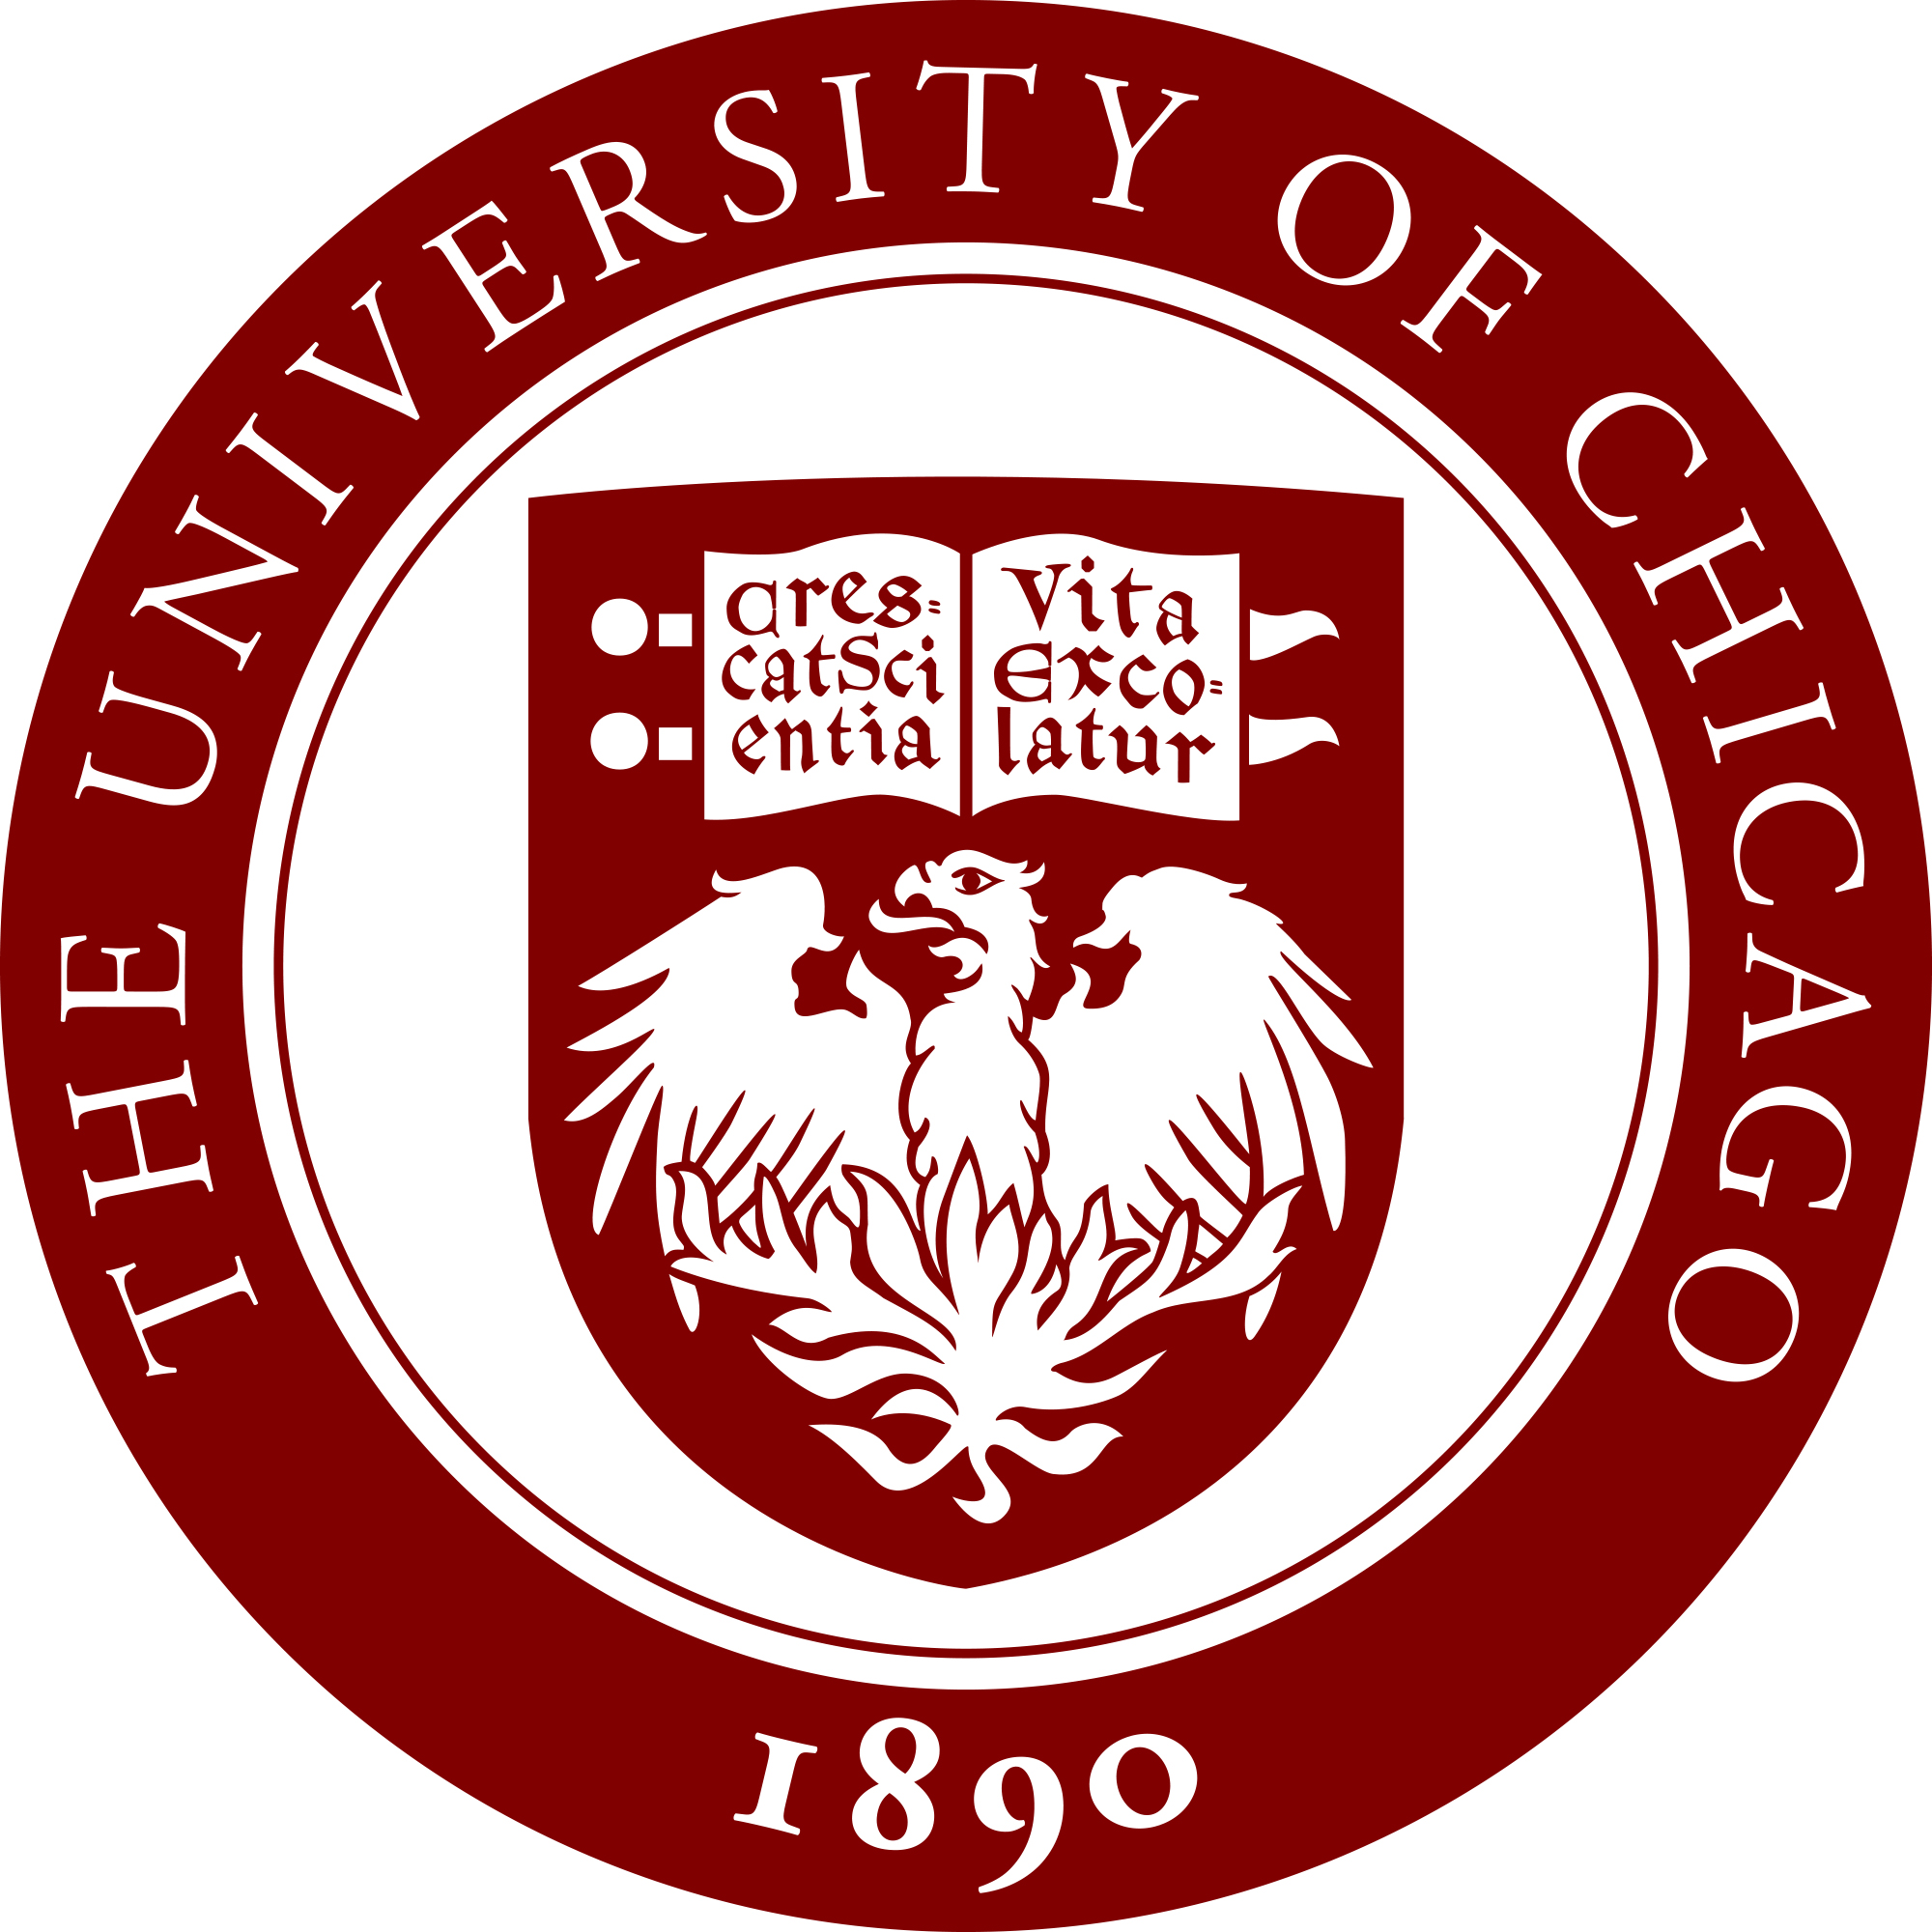 University of Chicago Divinity School, Marty Center Symposium on Religion and the 2020 Elections: Panel Discussion